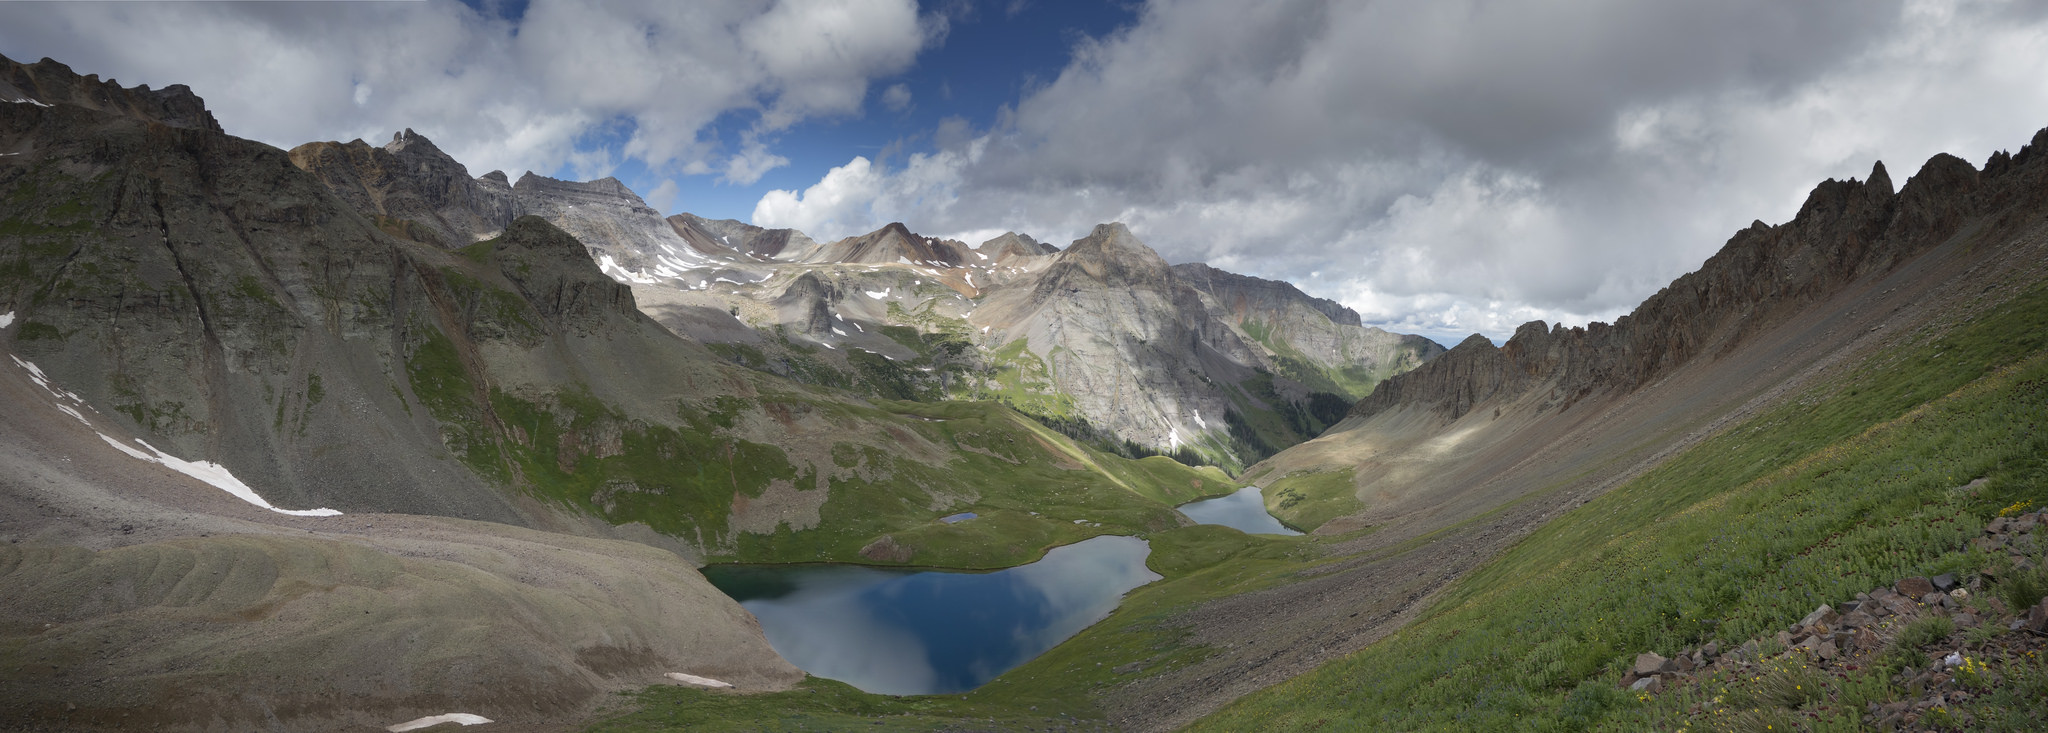 Blue Lakes in the San Juans of Colorado shot with an f stop of 9